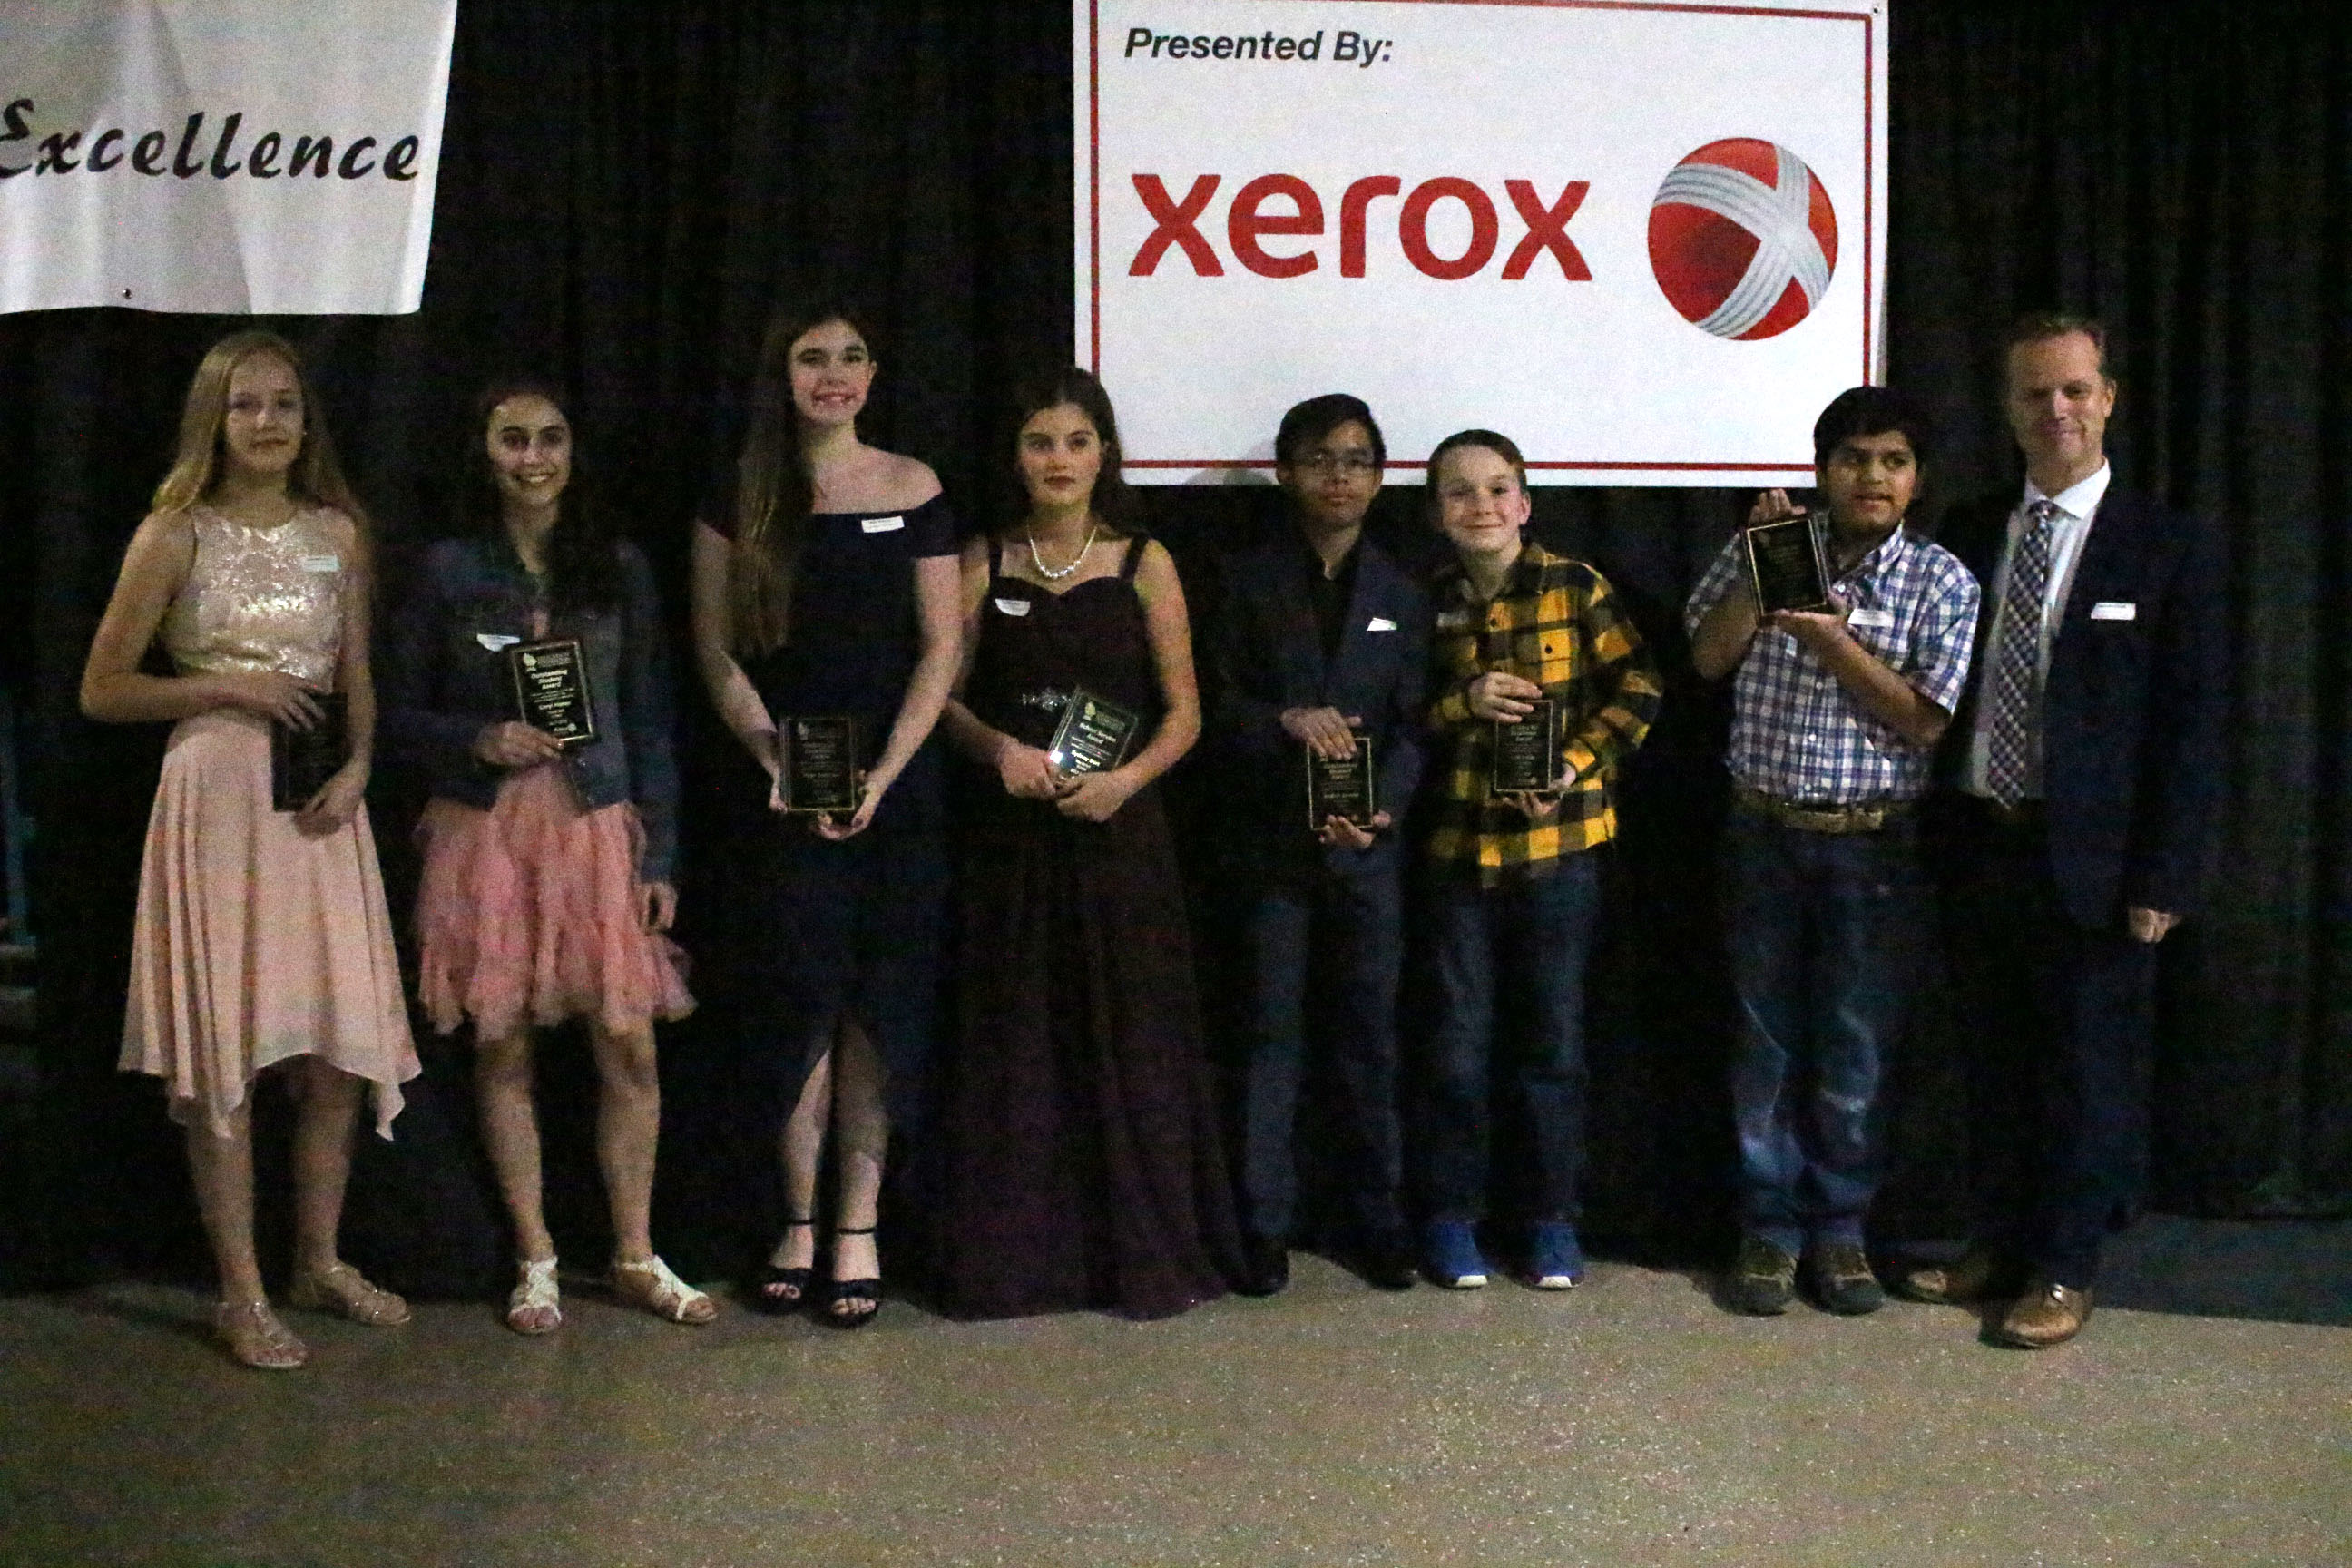 Special Thanks to Xerox for supporting the Striving for Excellence Dinner